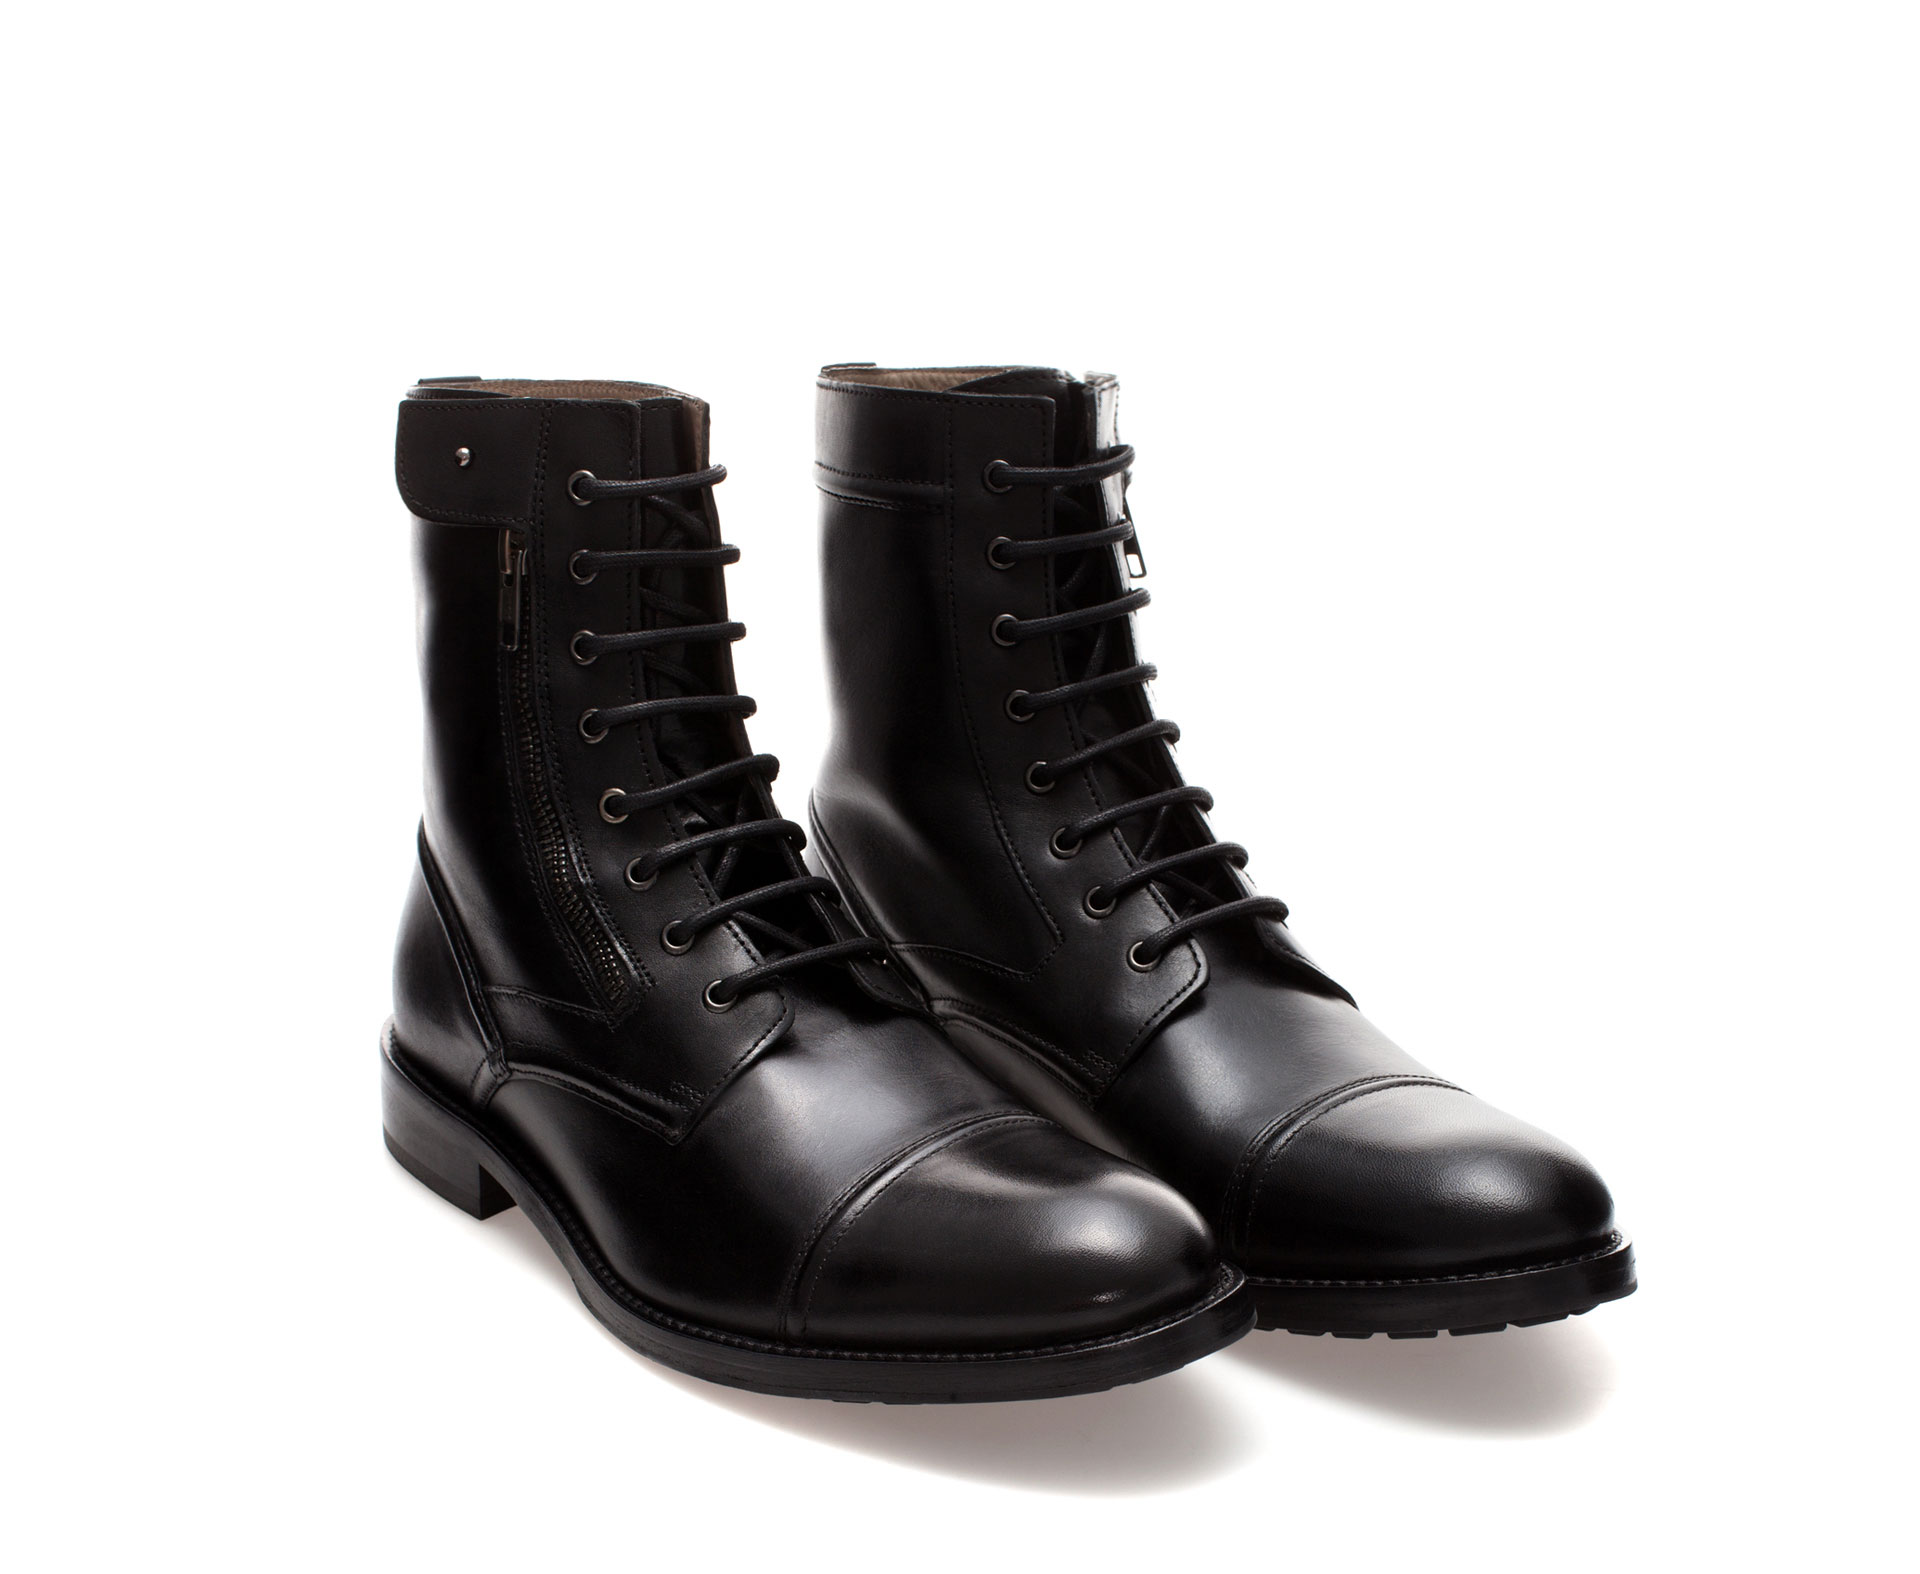 Zara Combat Boot In Black For Men Lyst